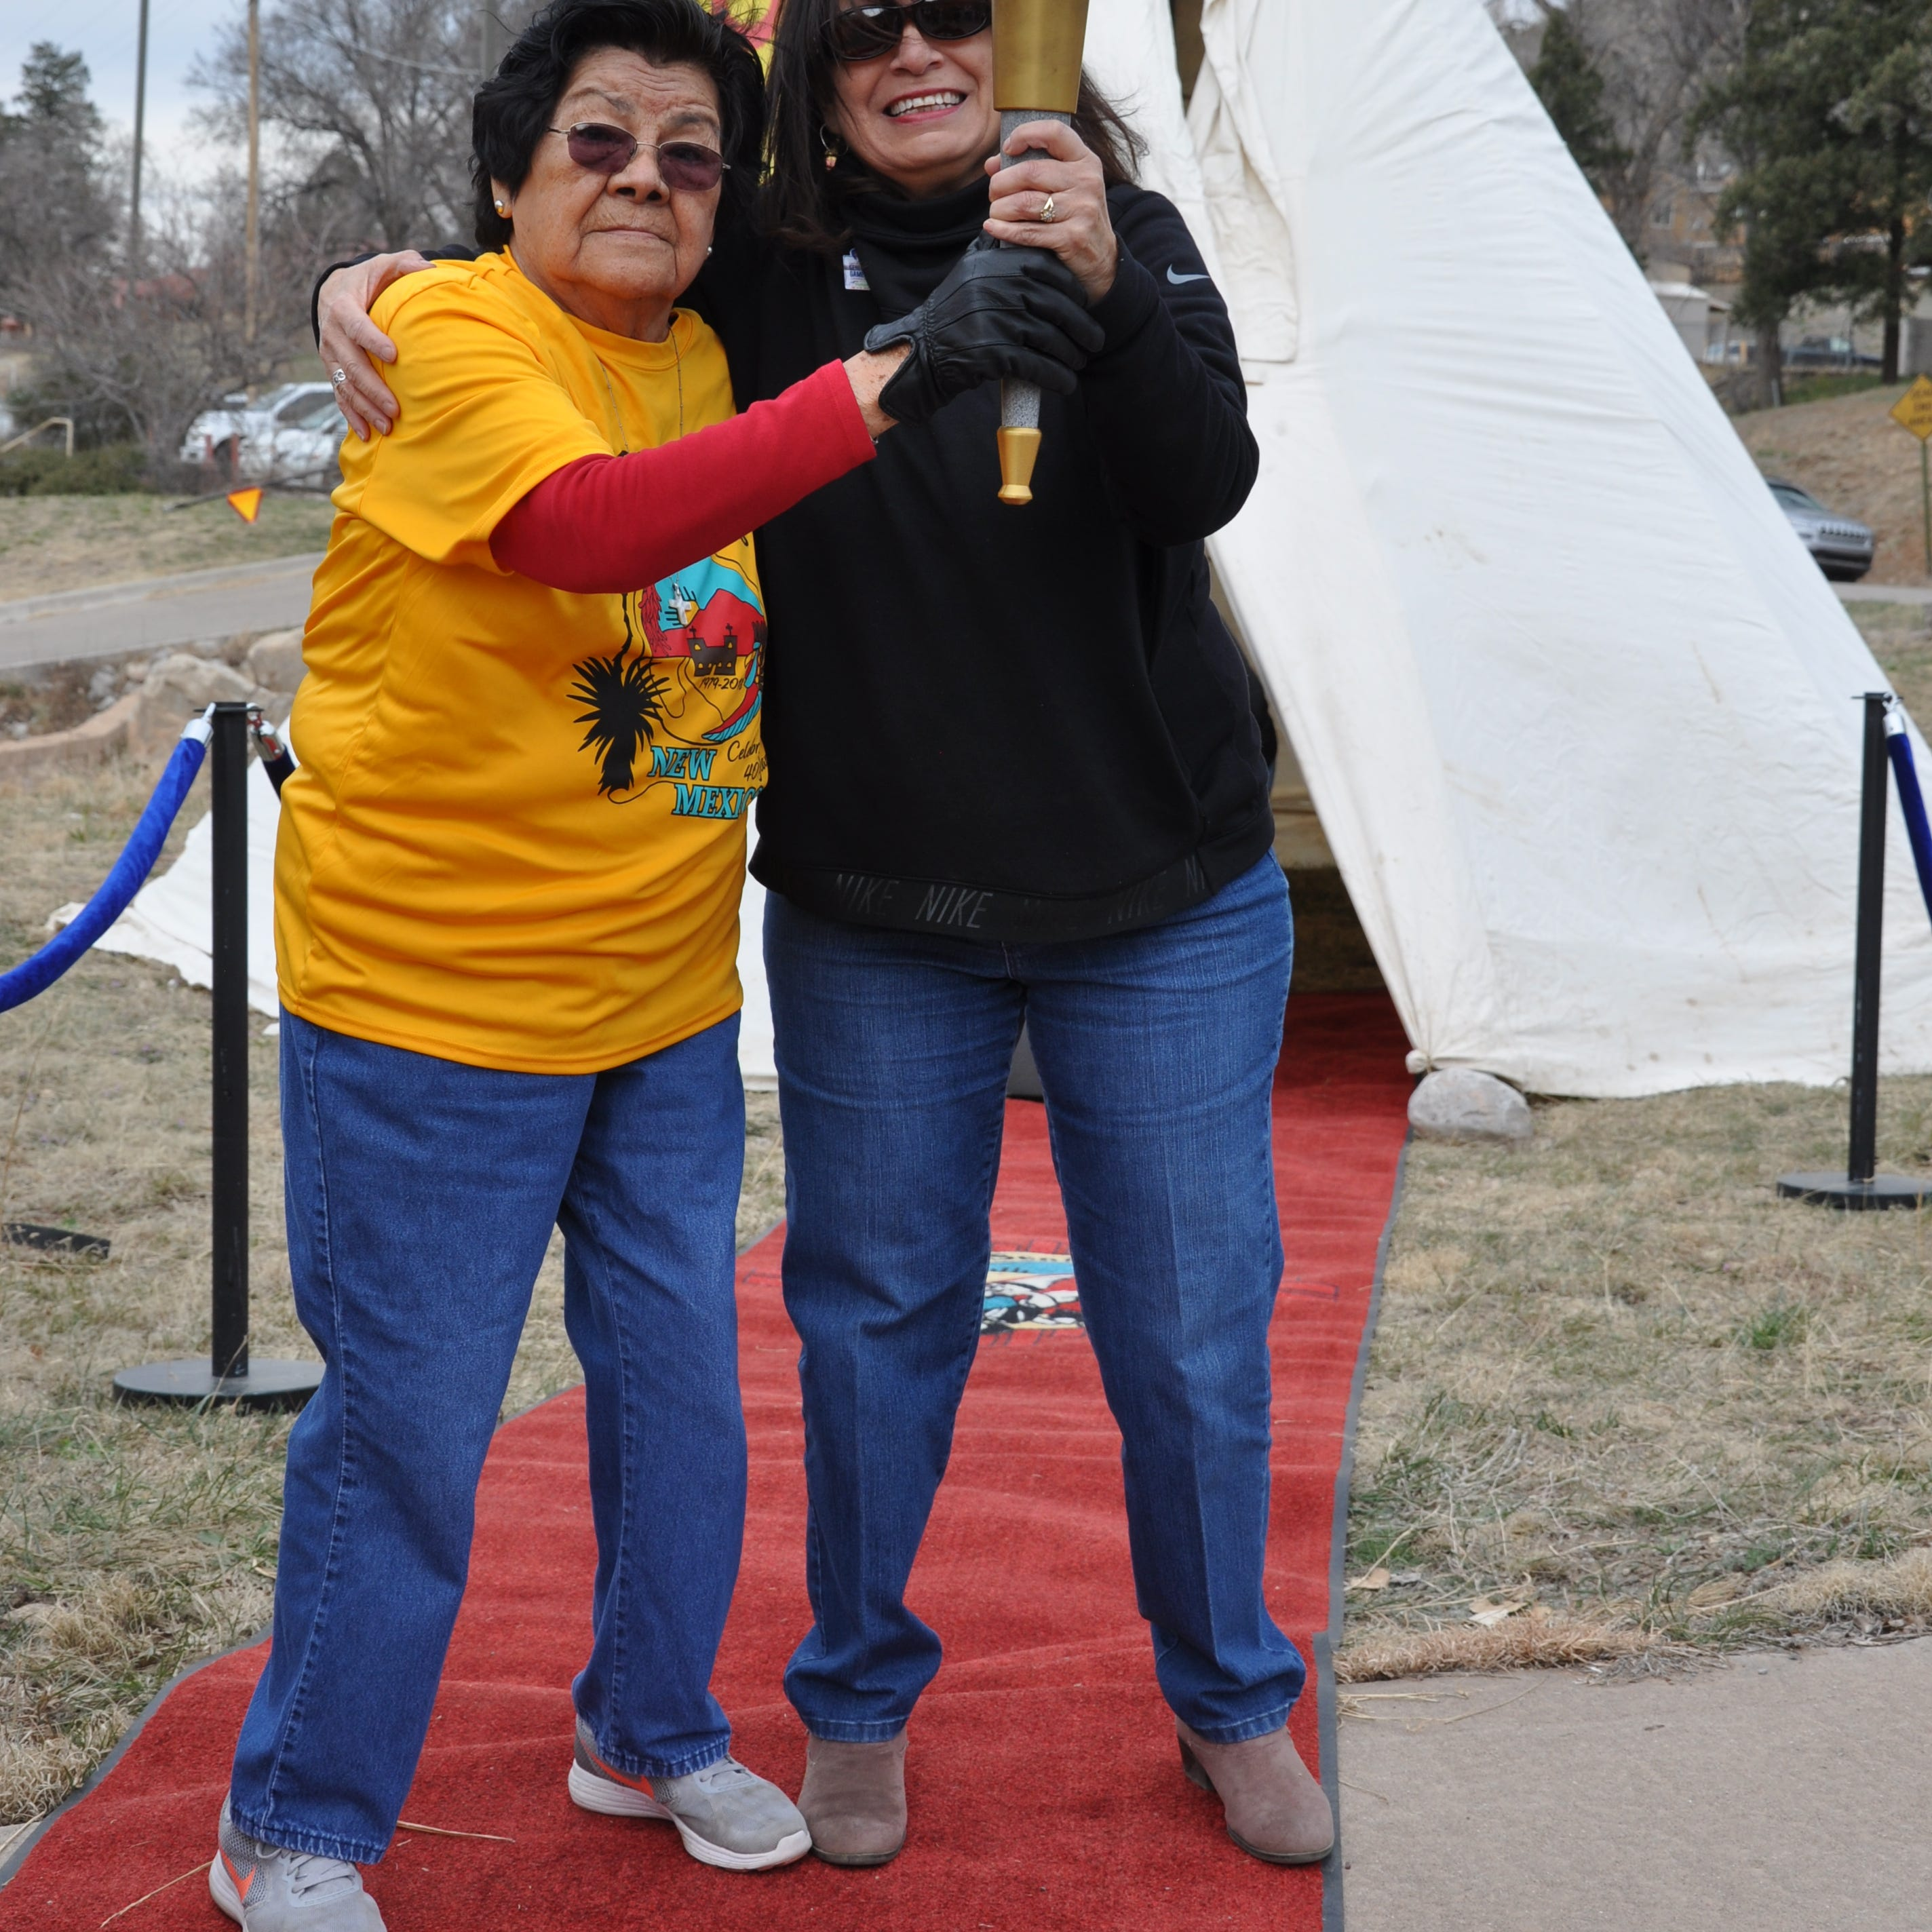 The passing of the torch relay at the Elderly Center in Mescalero.